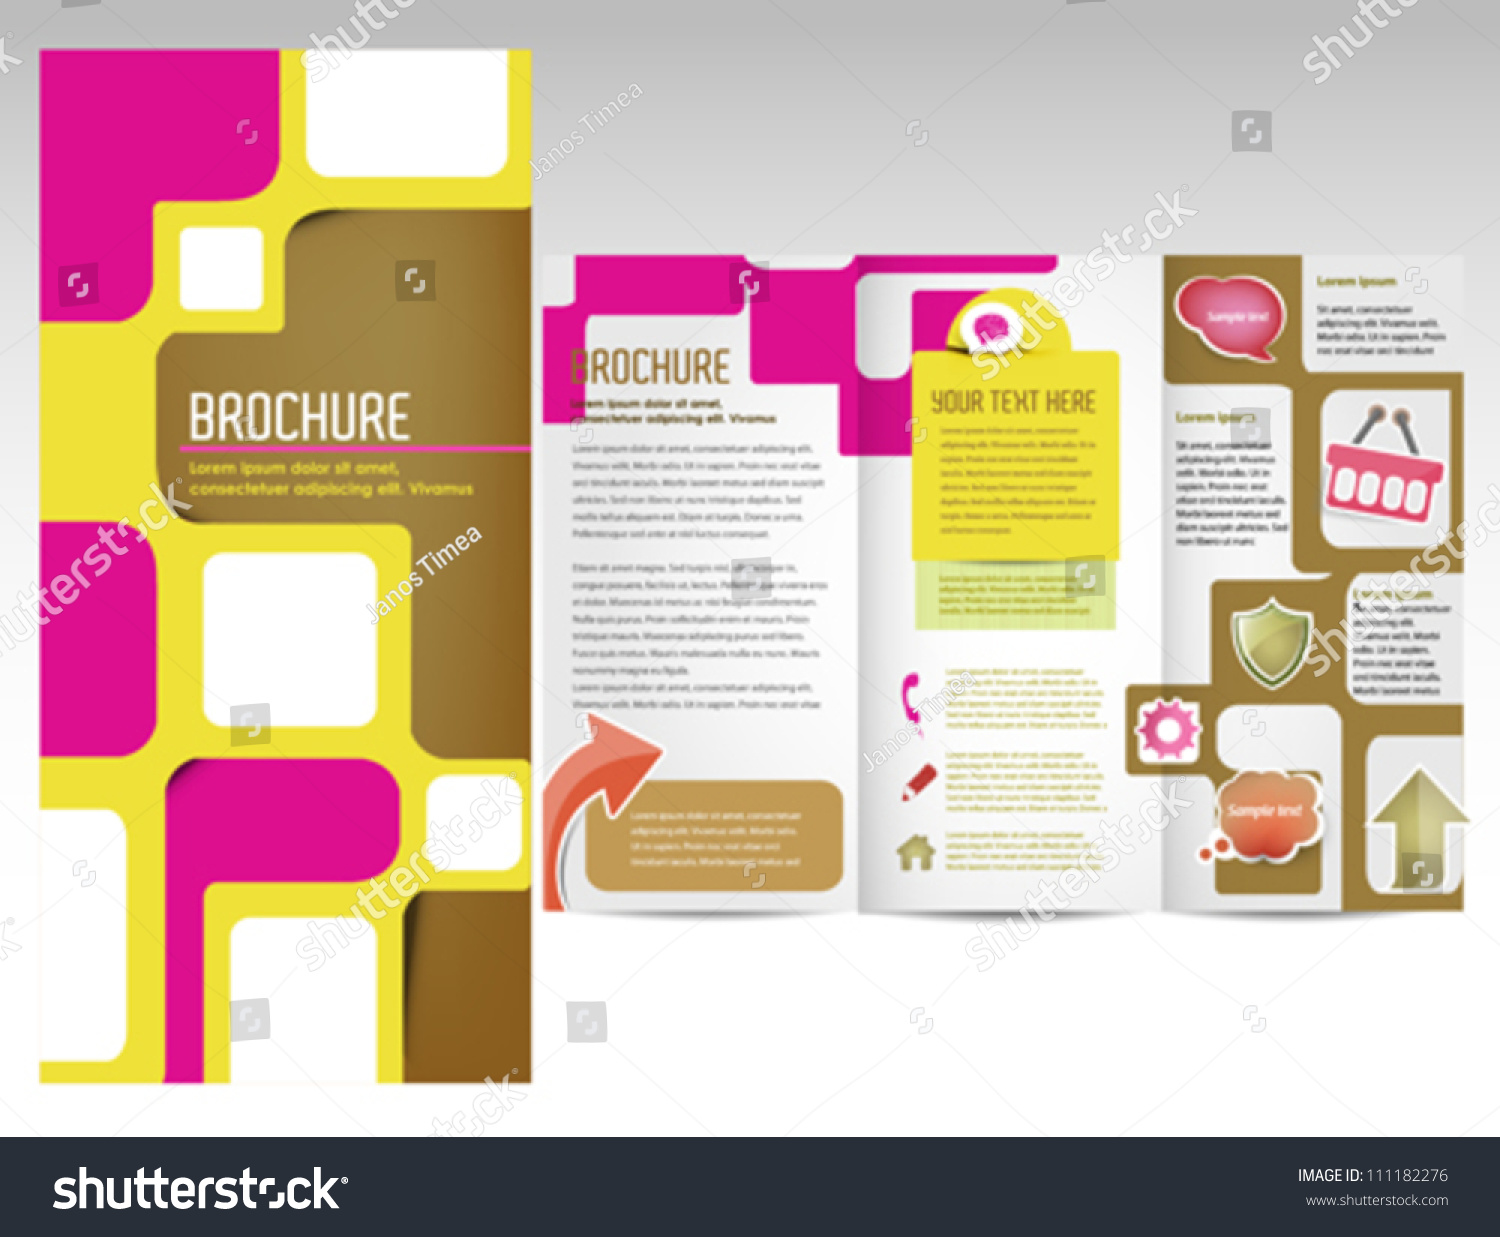 Attractive Brochure Template Inner Pages Document Stock Vector - Brochure template for pages